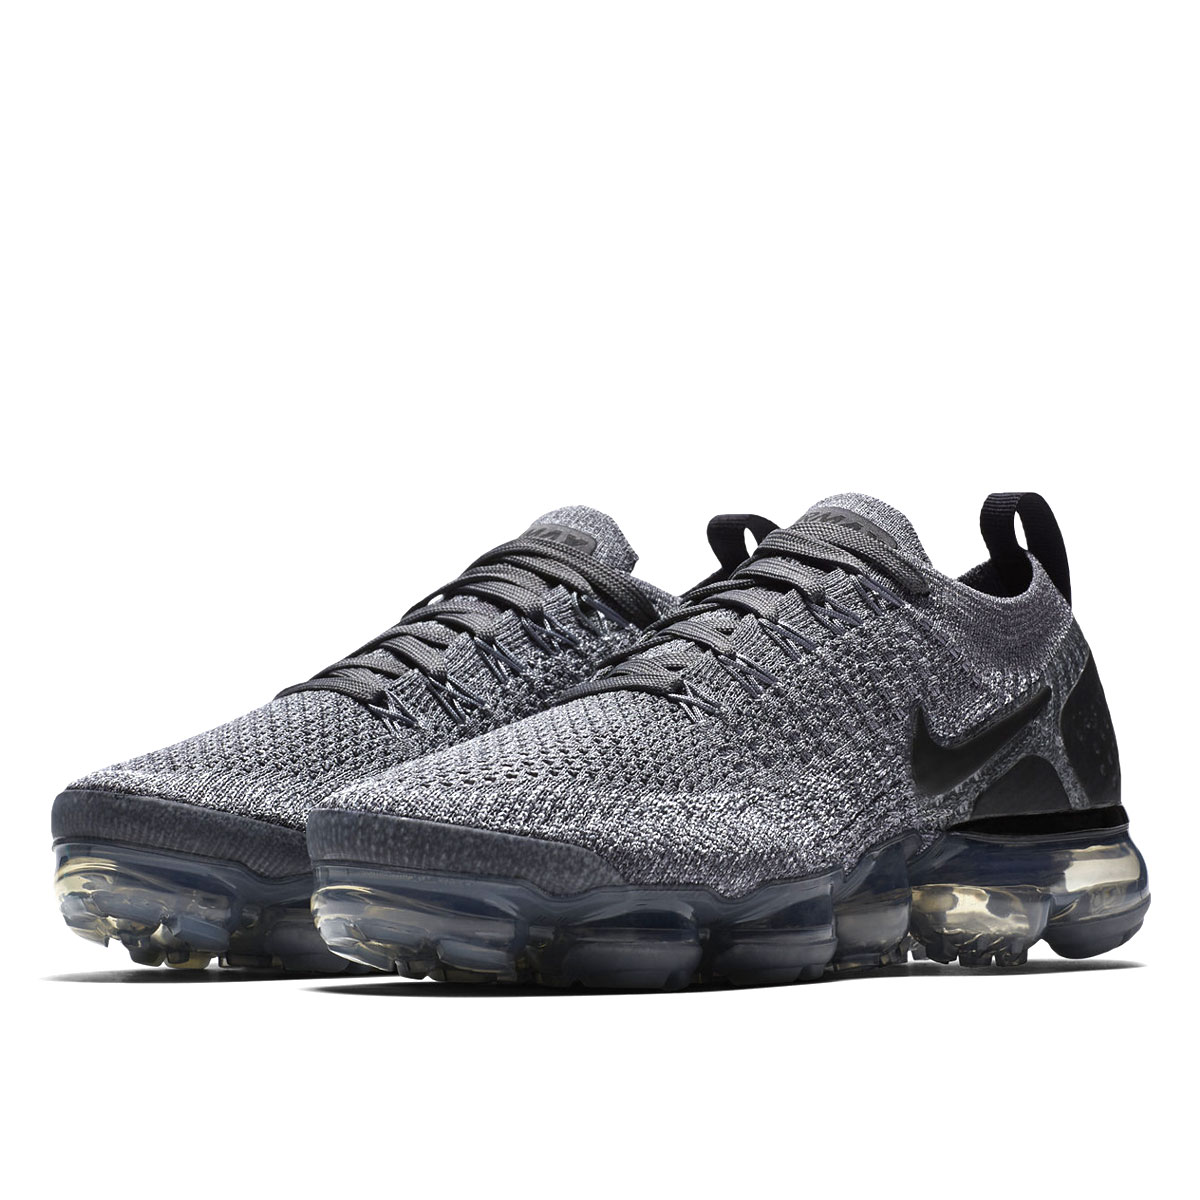 40b349c53538 NIKE WMNS AIR VAPORMAX FLYKNIT 2 Nike women vapor max fried food knit DARK  GREY WOLF GREY 942